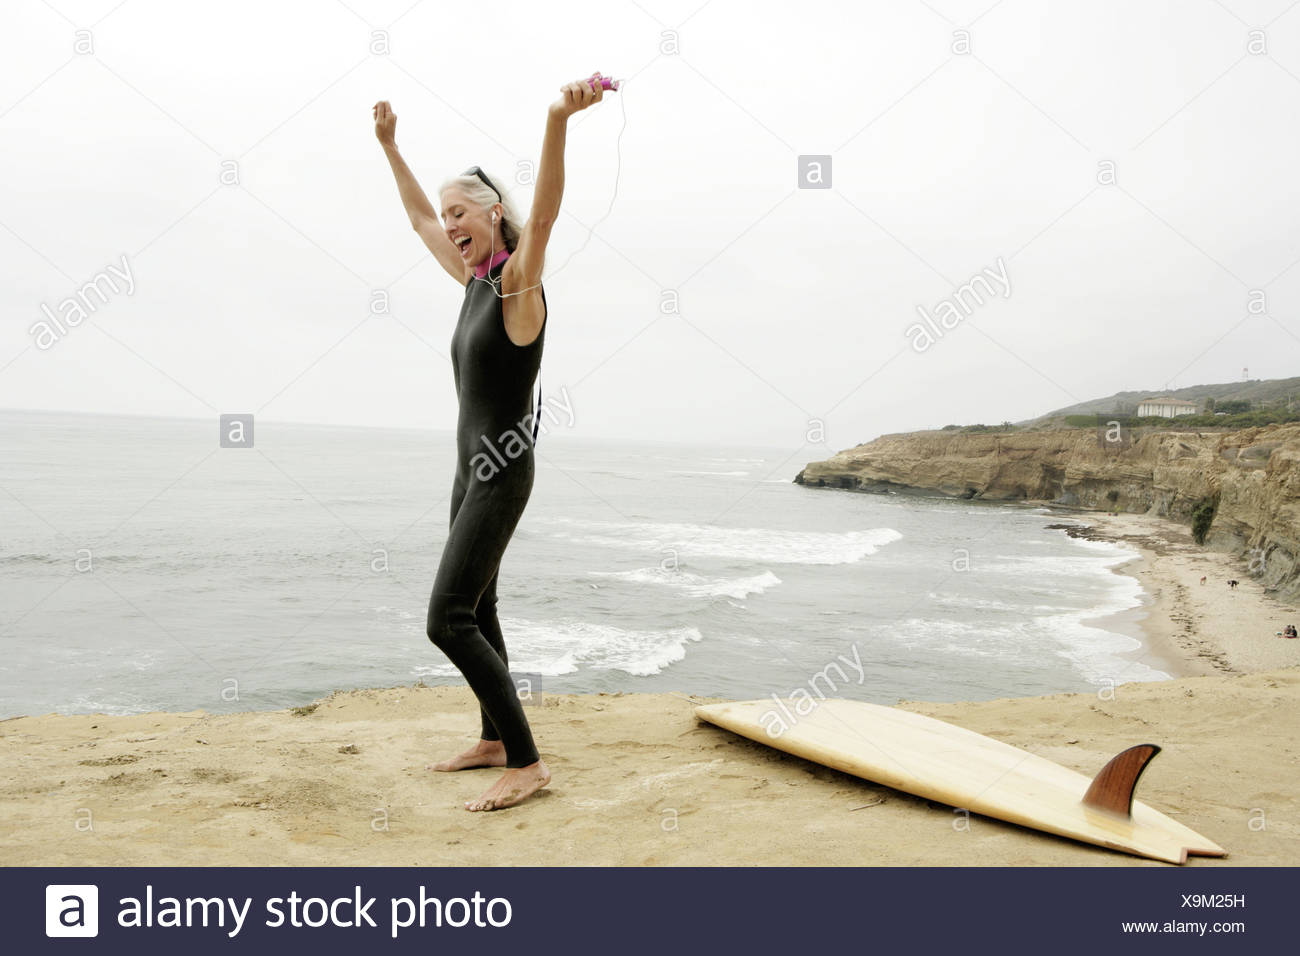 View of a woman rejoicing on a shore. - Stock Image